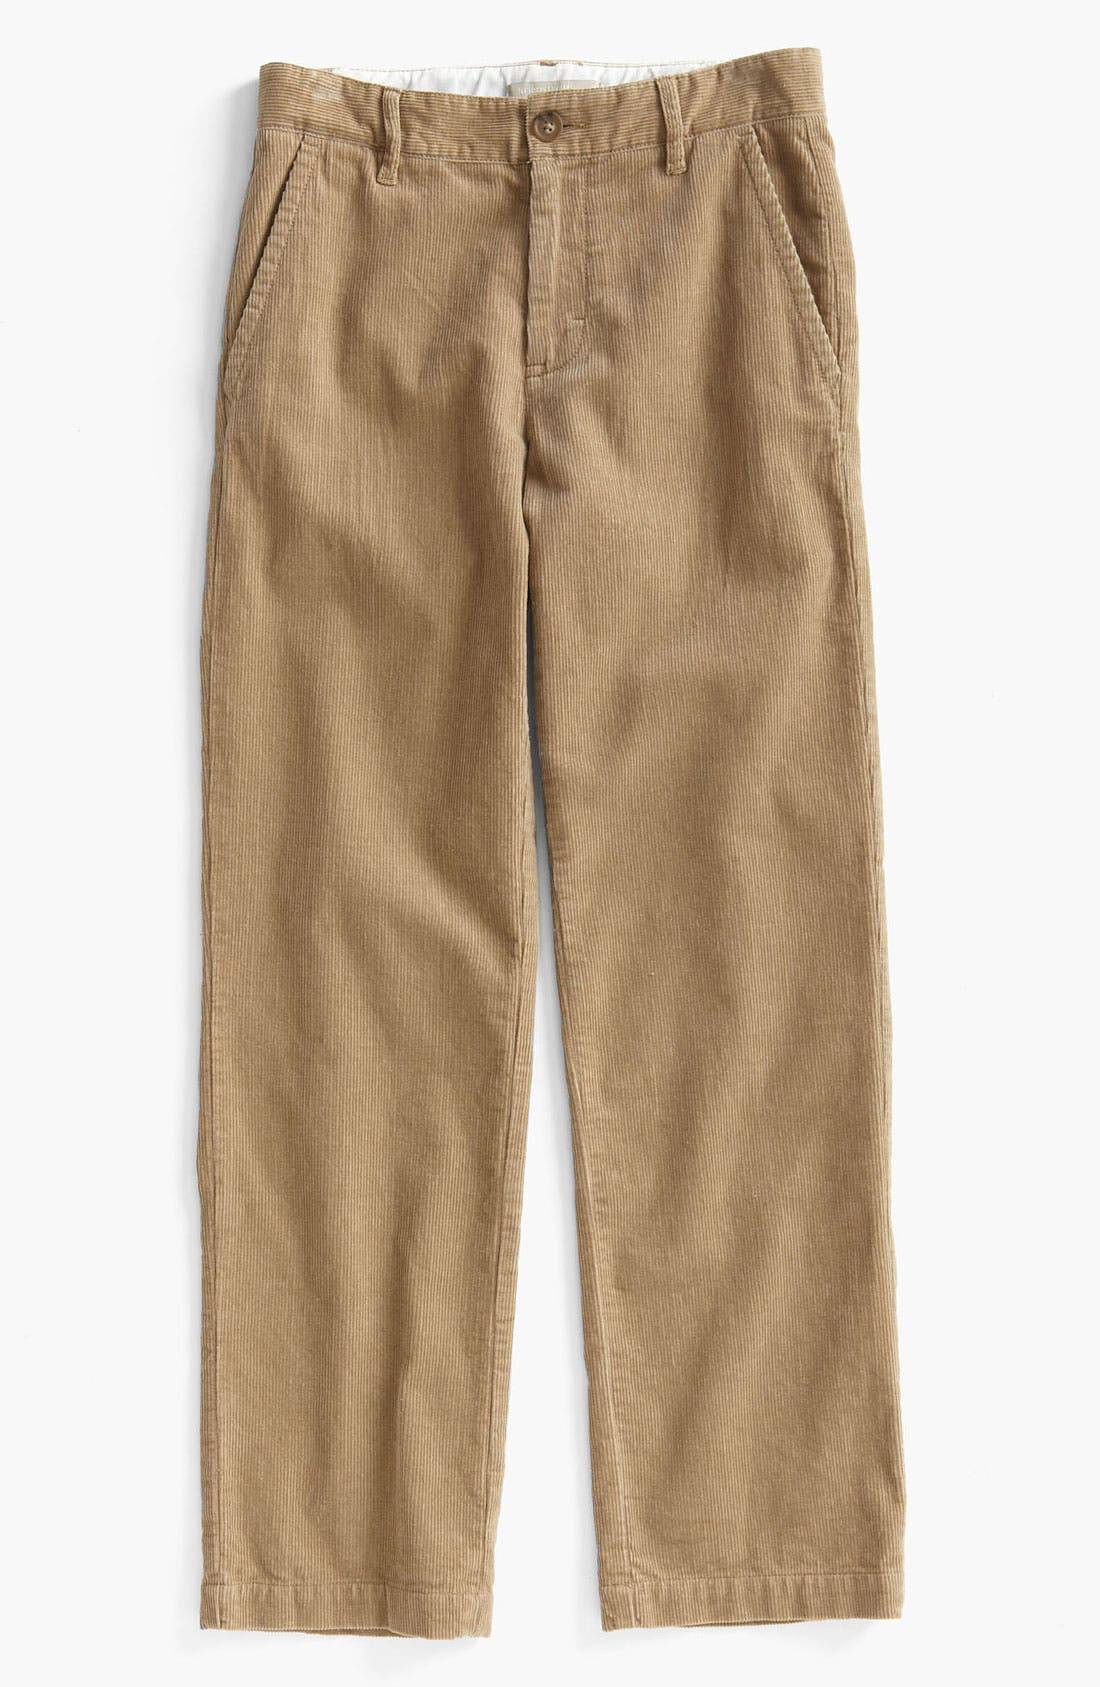 Alternate Image 1 Selected - Nordstrom 'Edward' Corduroy Trousers (Big Boys)